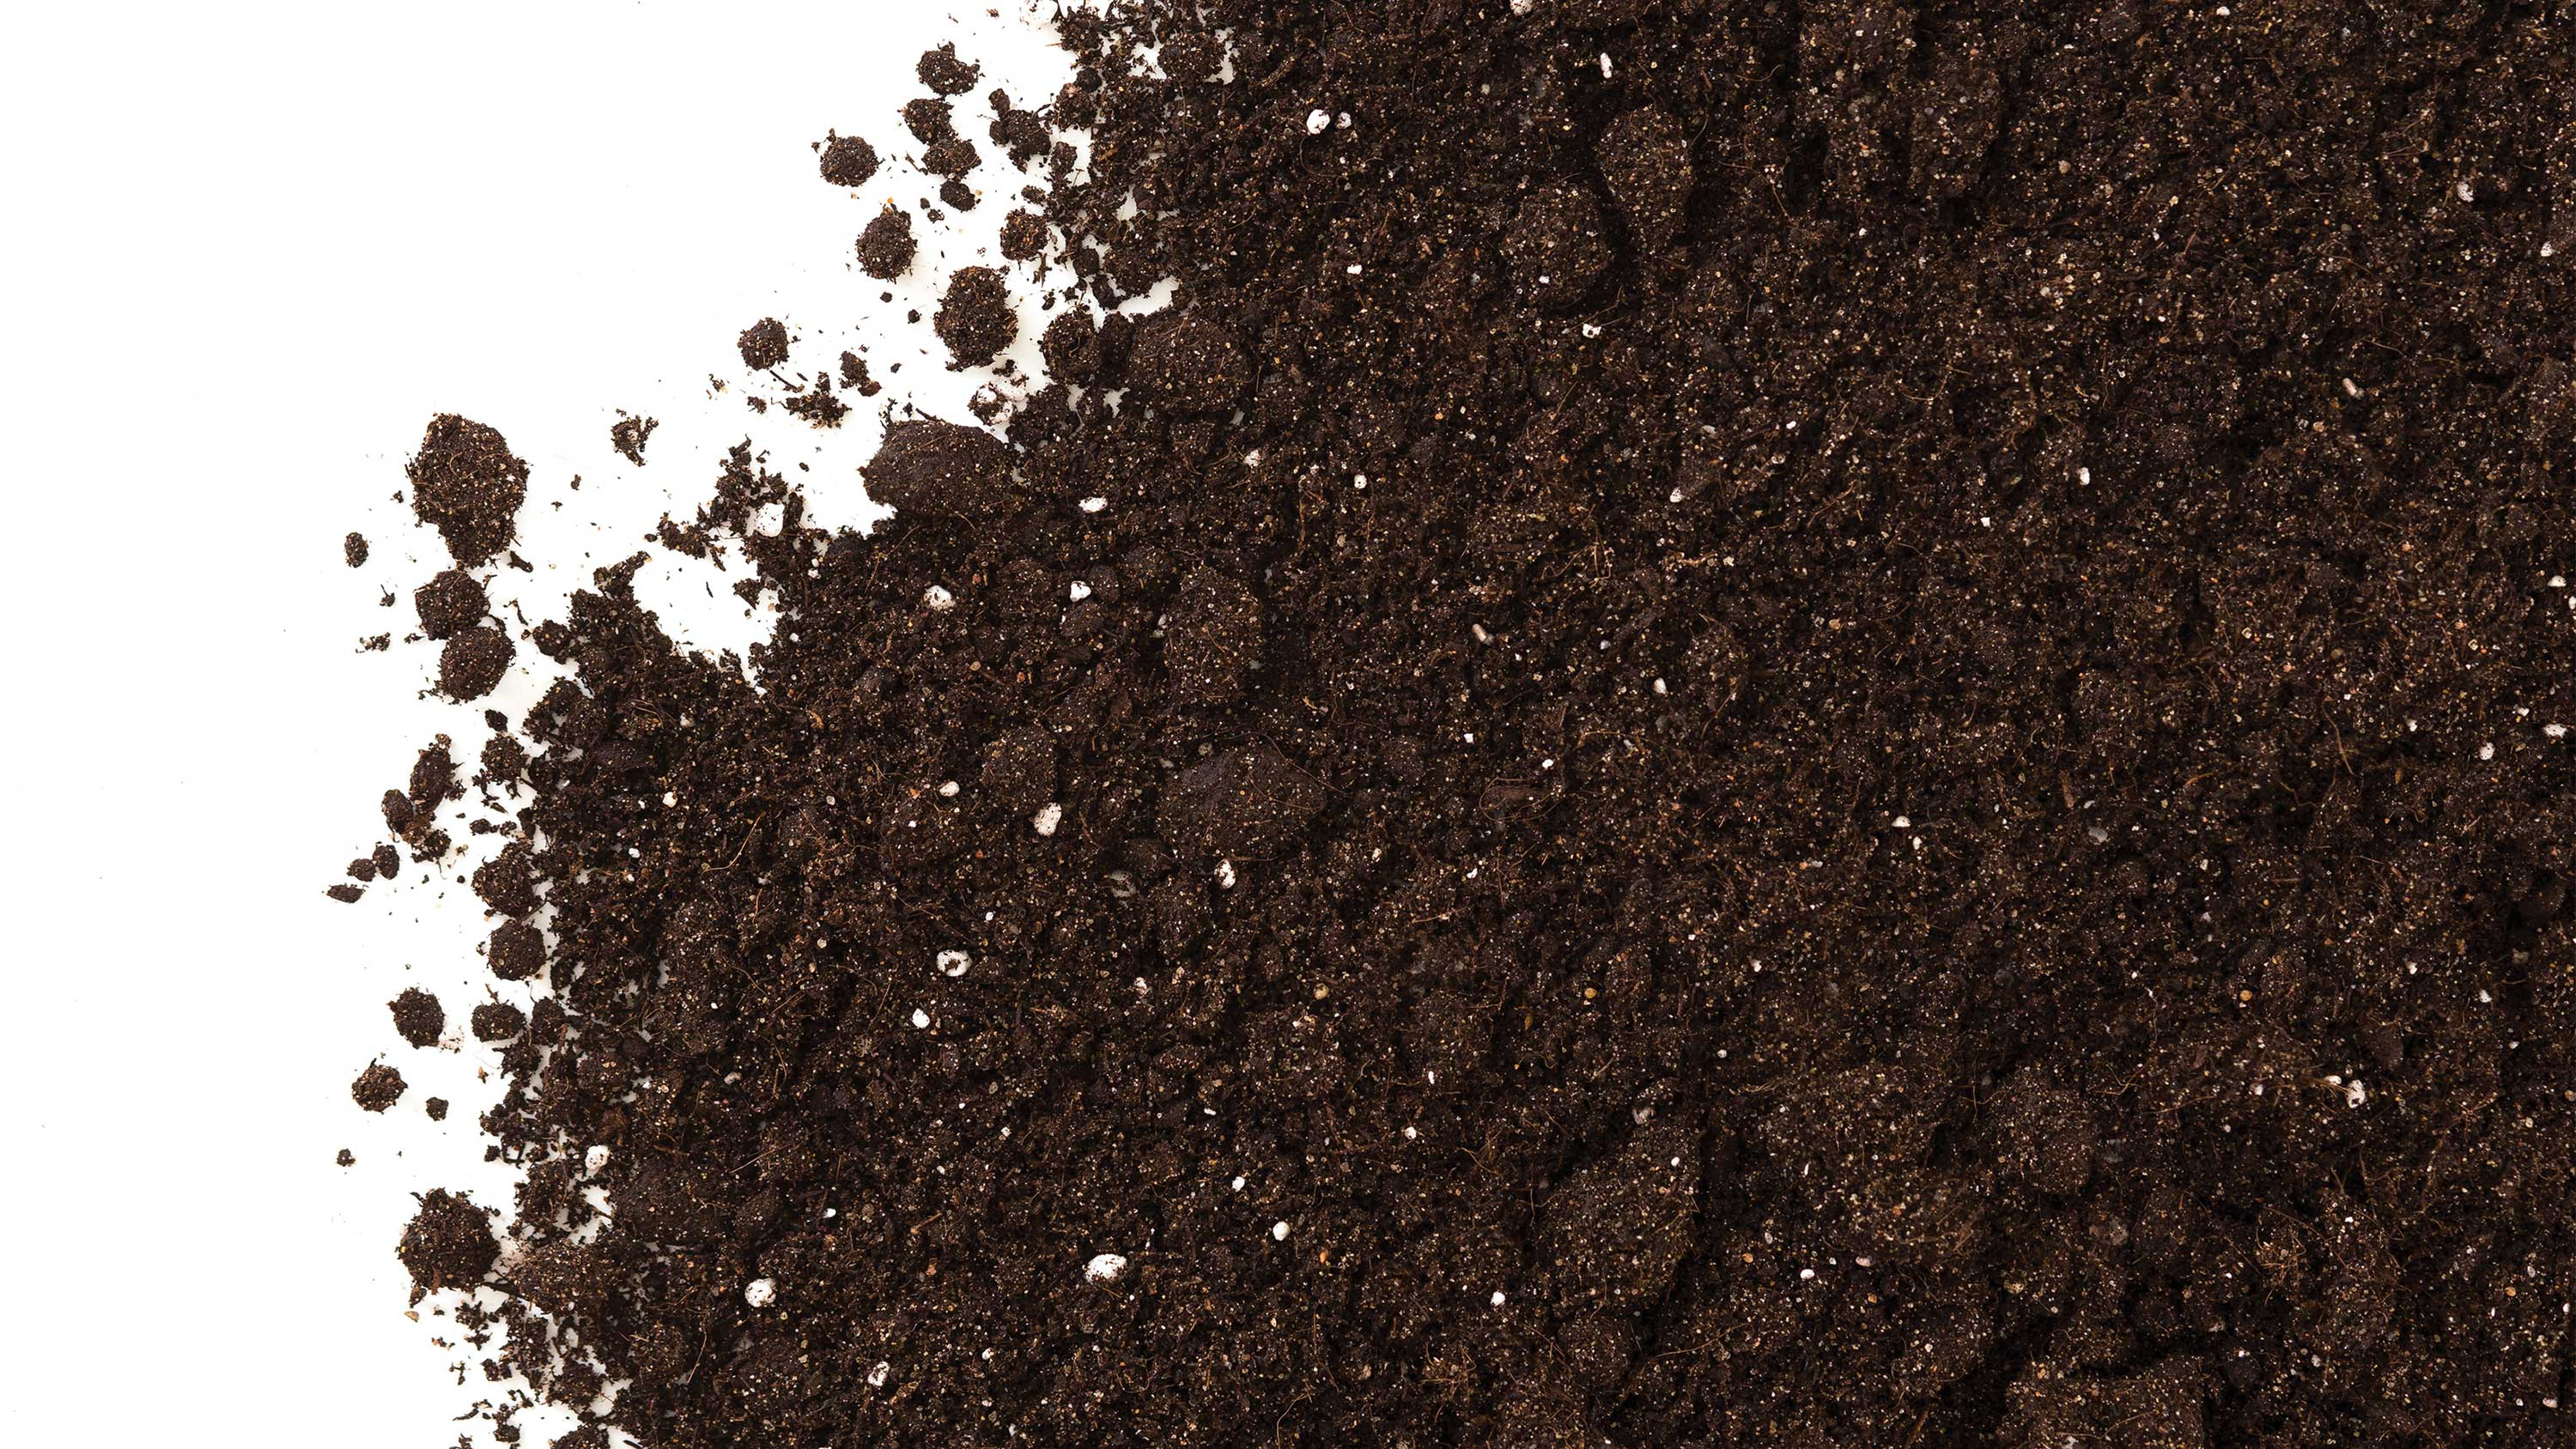 soil scattered acoss a white background